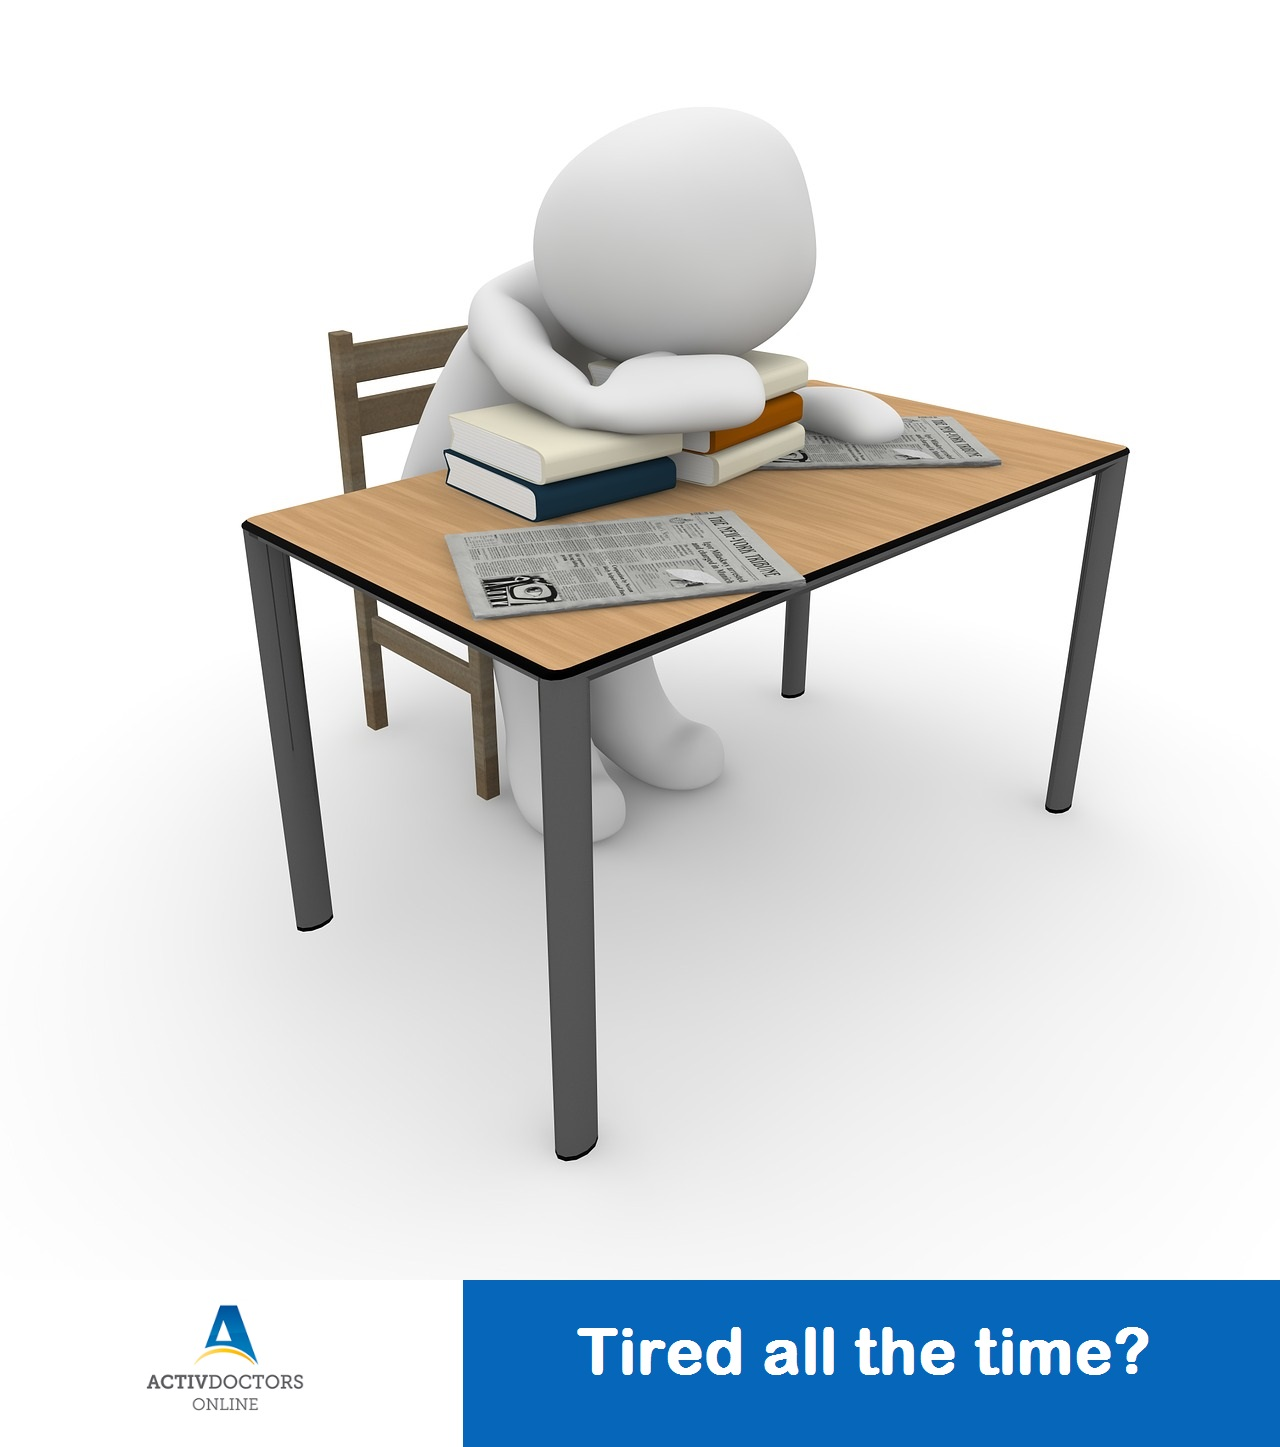 Tired all the time?